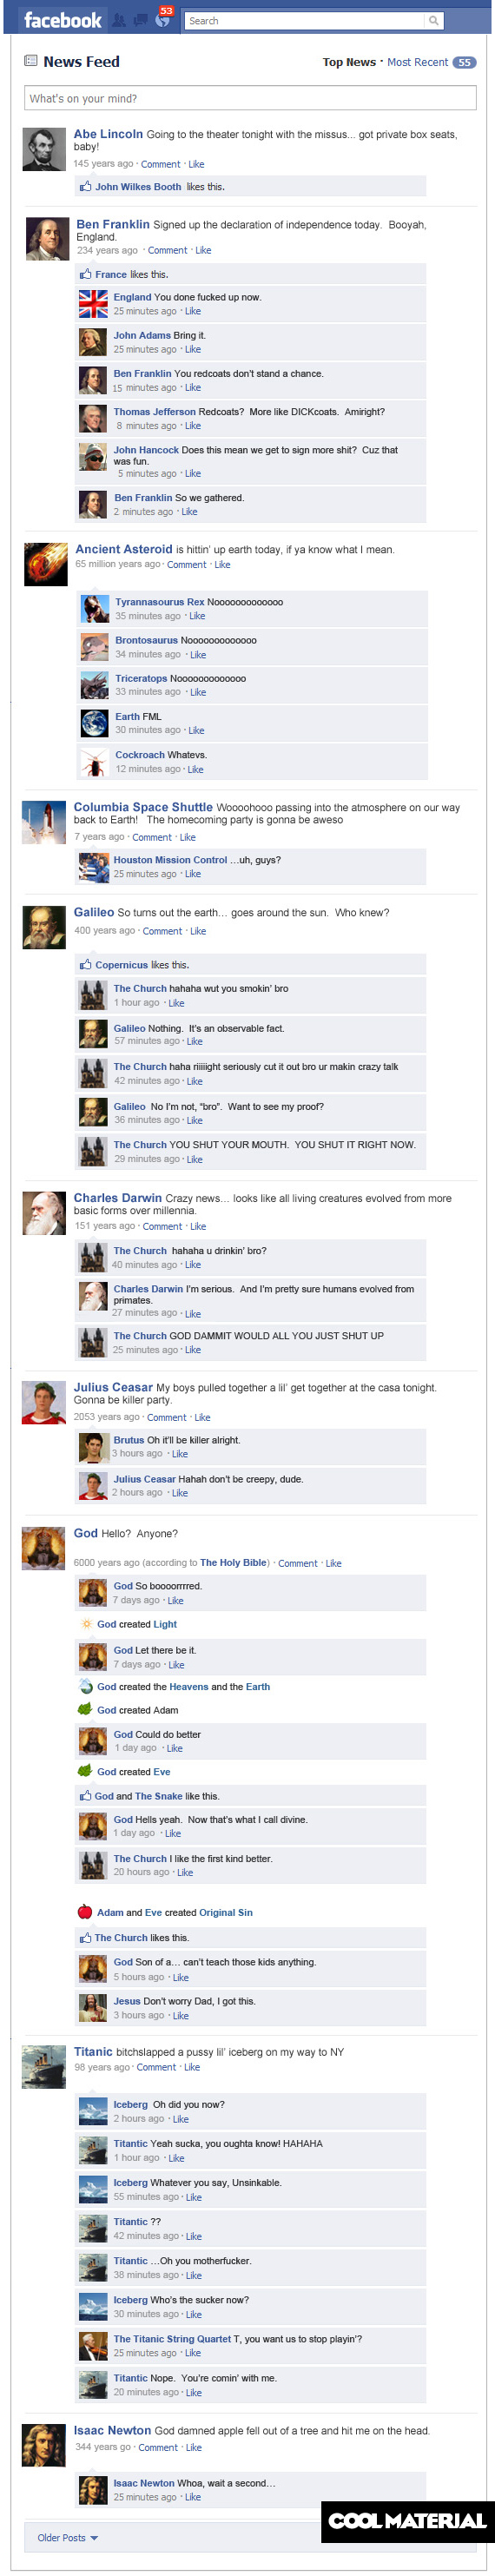 Historical Facebook Status Updates